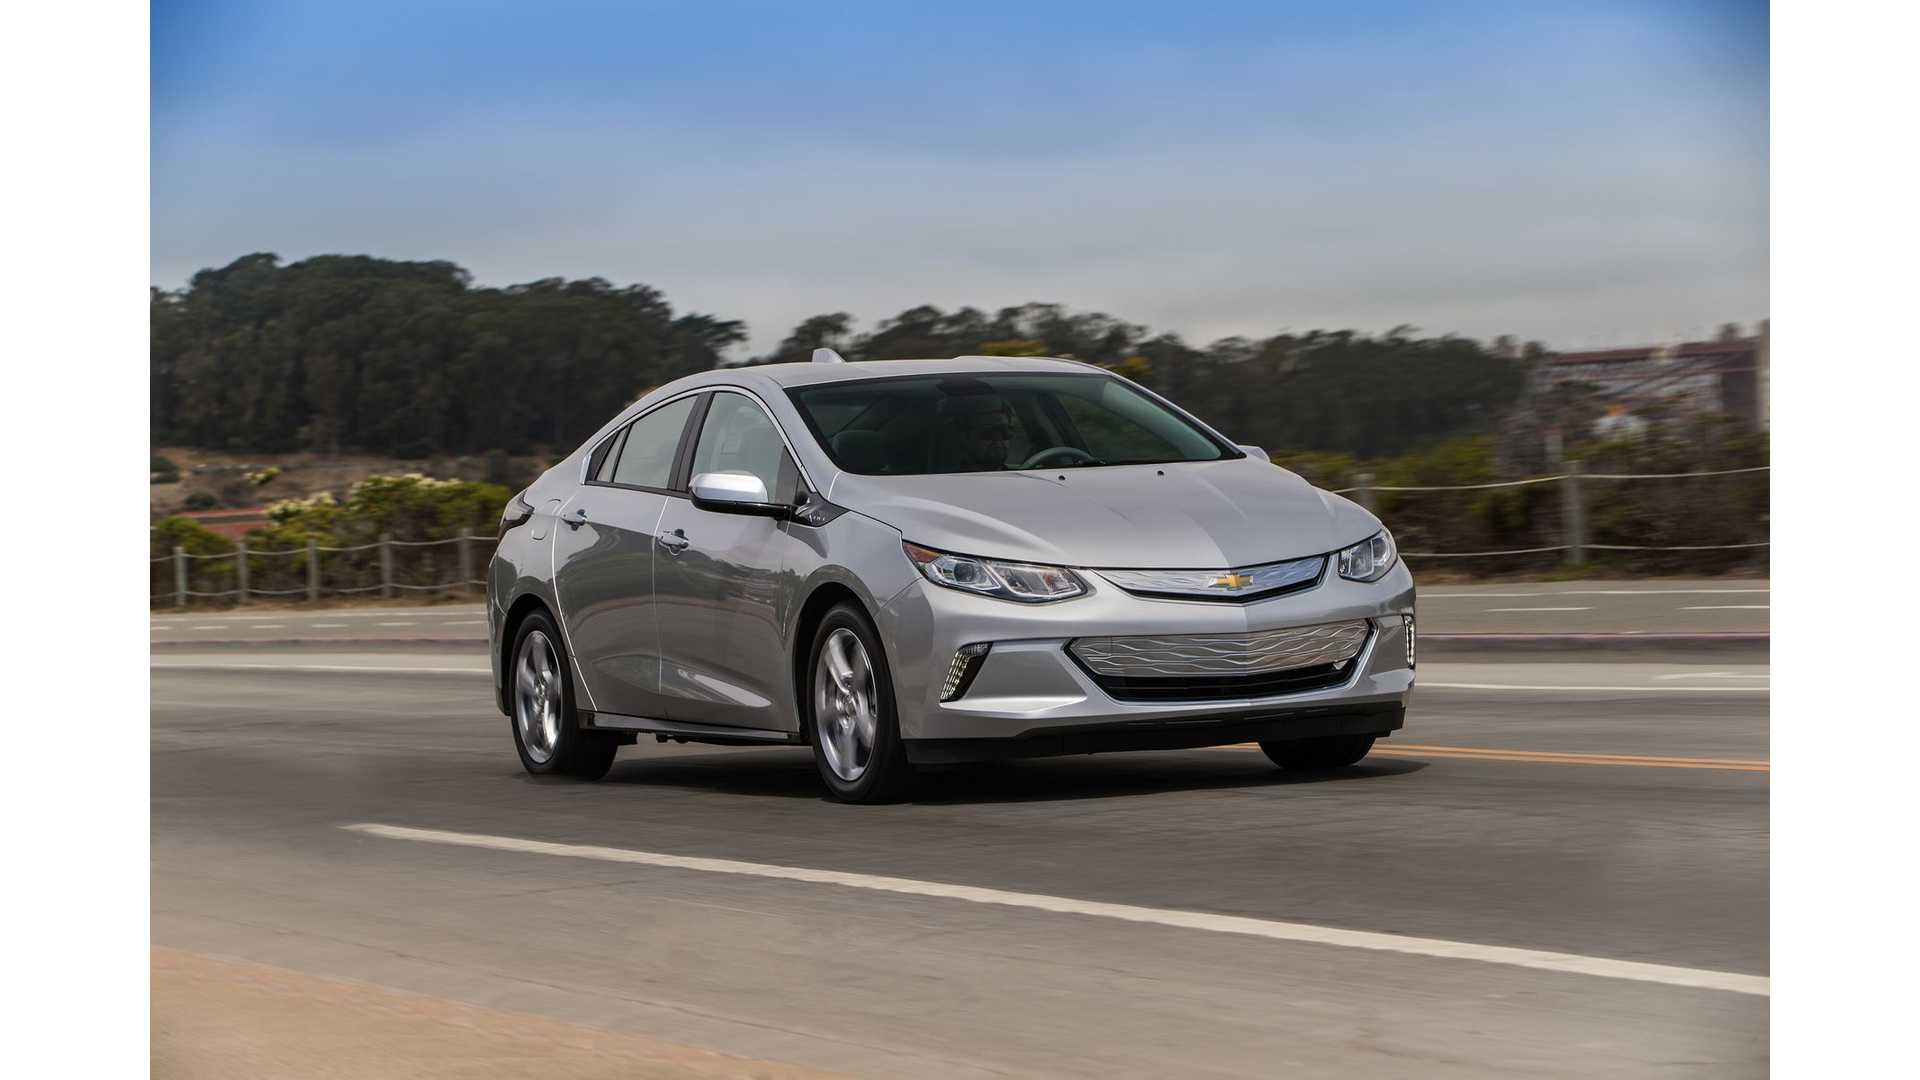 61 New Best Chevrolet 2019 Volt Concept Price